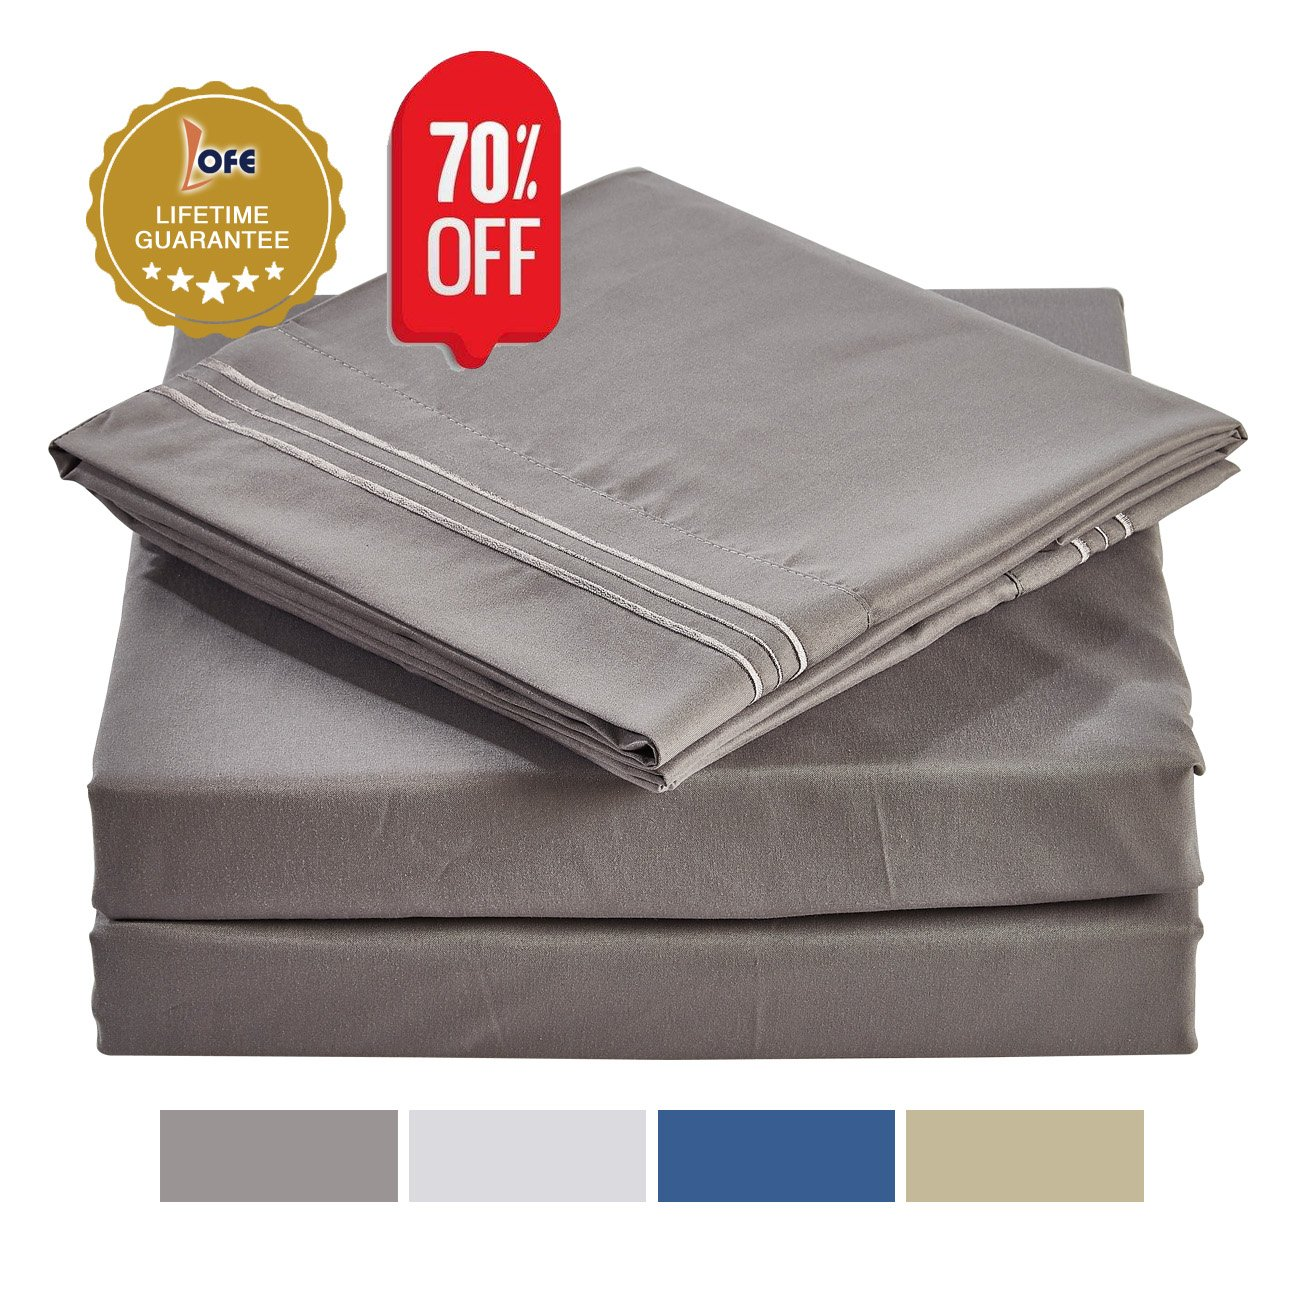 Queen Size Bed Sheets Set Gray, Bedding Sheets Set on Amazon, 4-Piece Bed Set, Deep Pockets Fitted Sheet, 100% Luxury Soft Microfiber, Hypoallergenic, Cool & Breathable